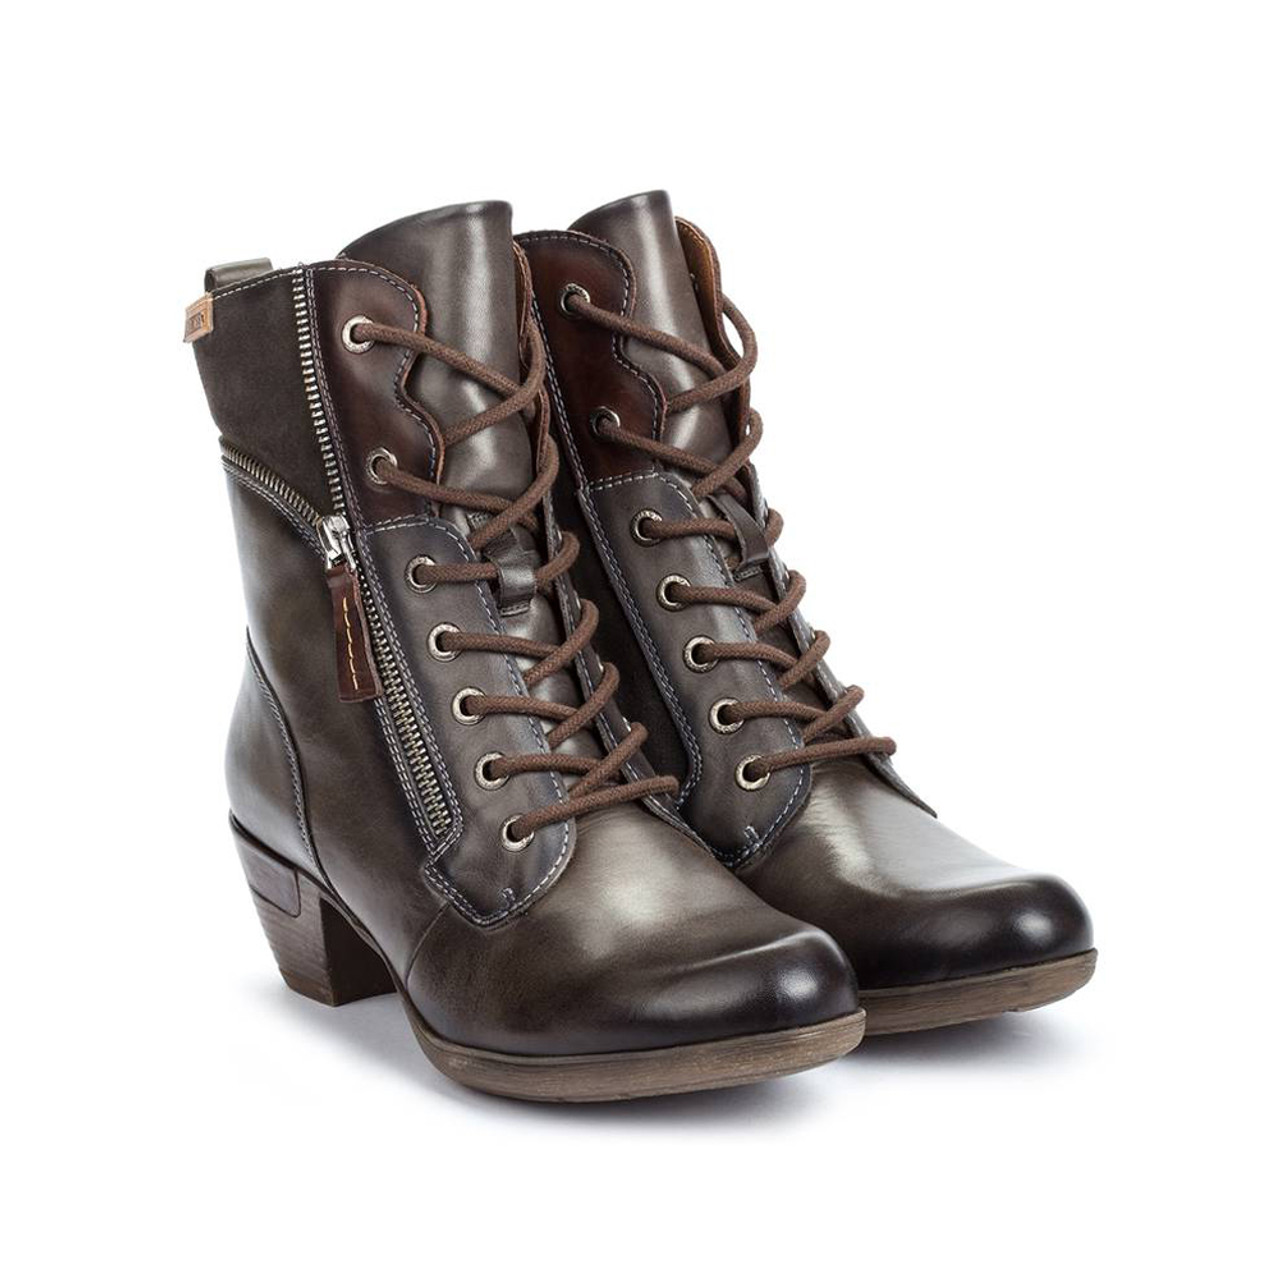 3f283cd28f3 Pikolinos Women s Rotterdam 902-9627 Boot Lead Olmo - Shop now   Shoolu.